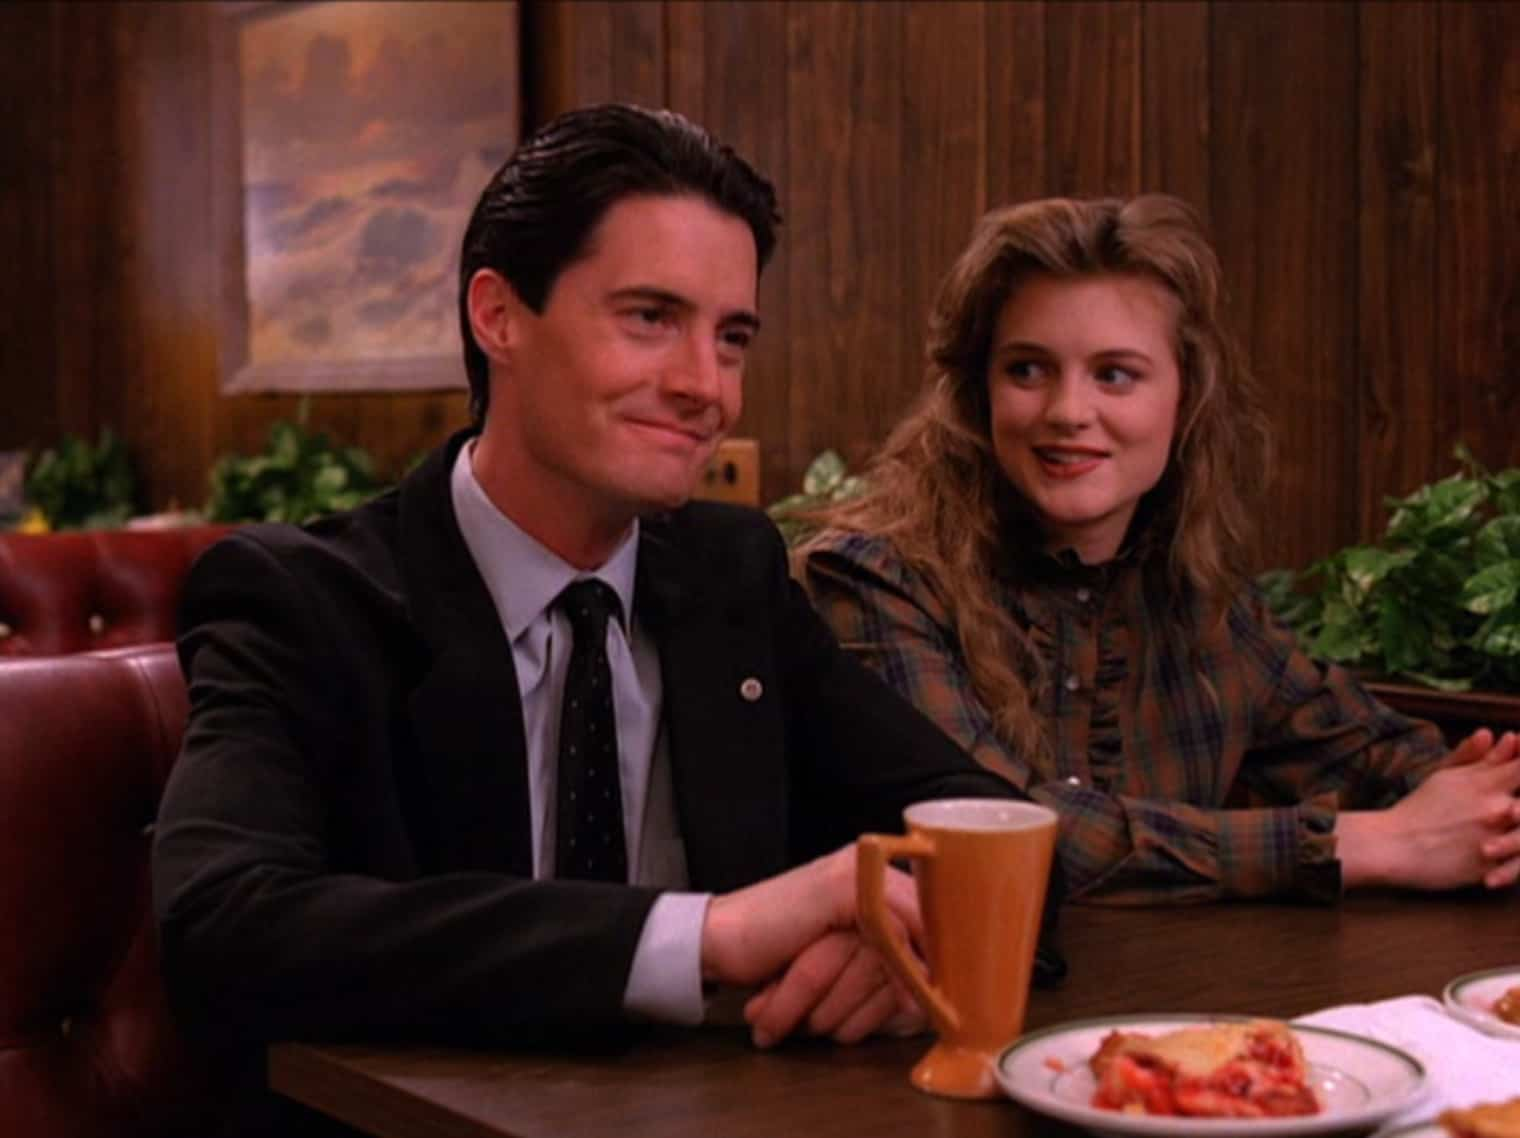 Dale Cooper and Annie Blackburn at the Double R Diner